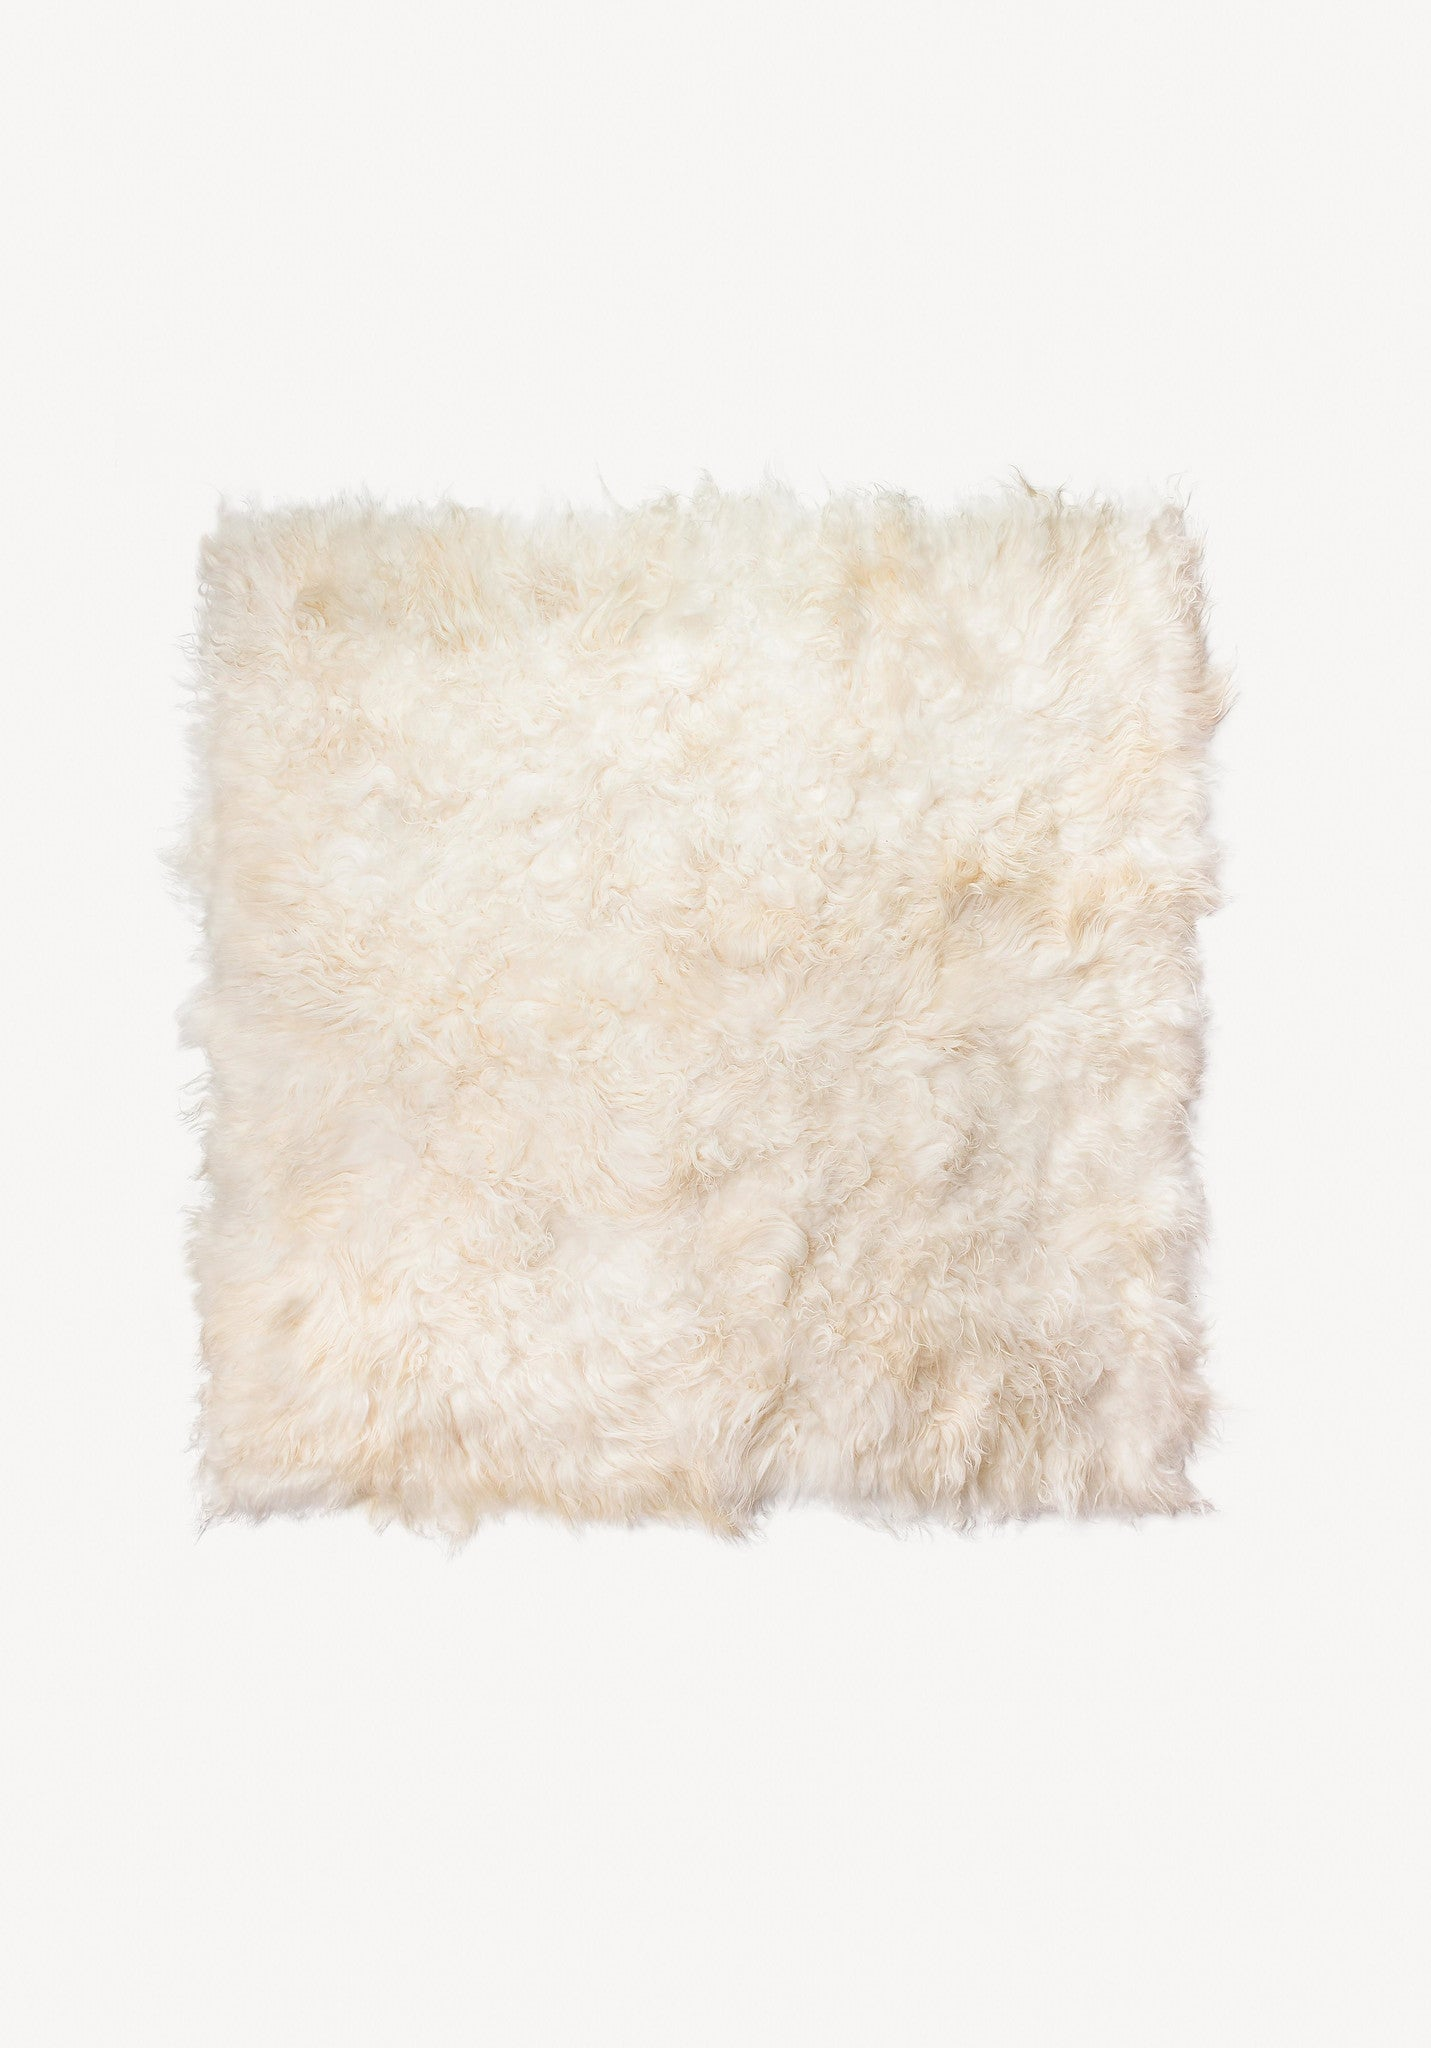 Round sheepskin Rug Multicolor Hygge Life